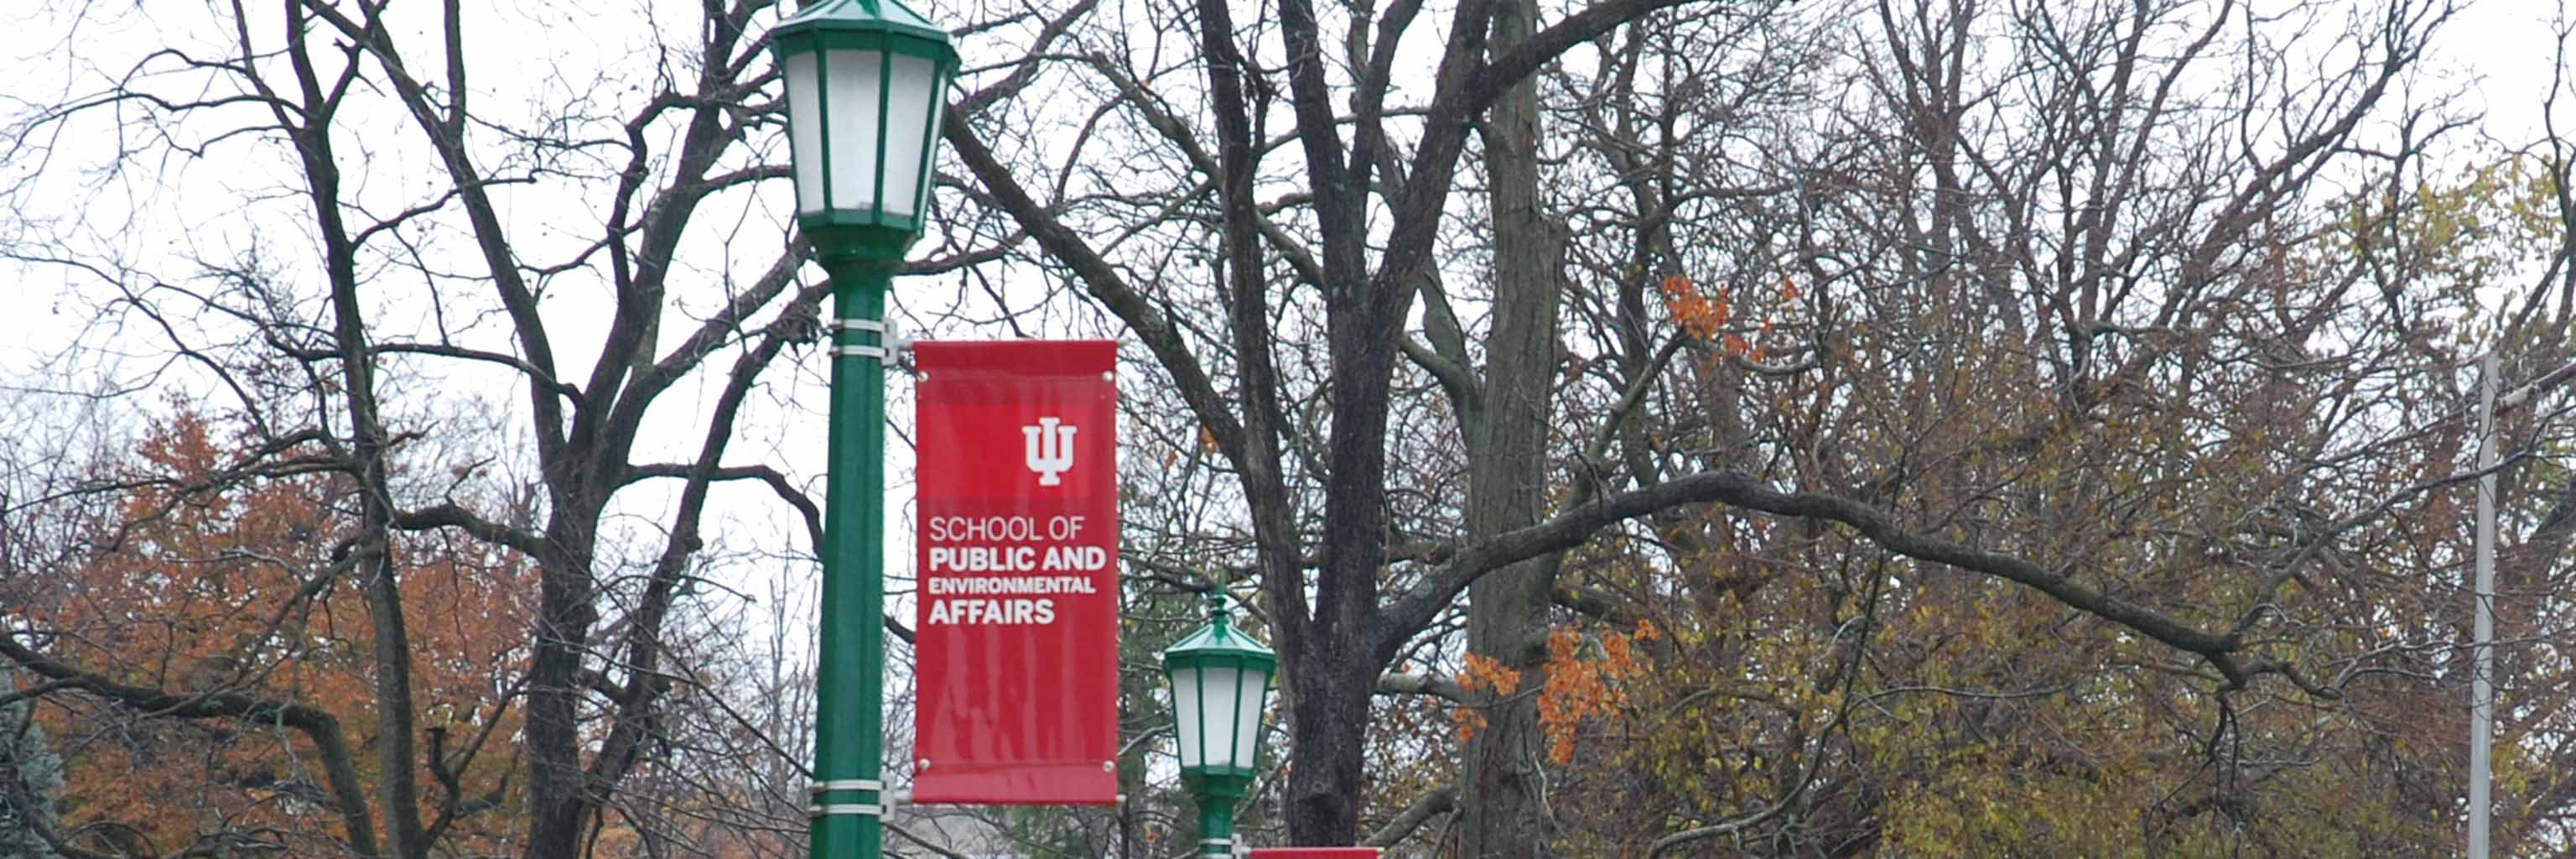 A red banner with the school's name hangs on a green lampost